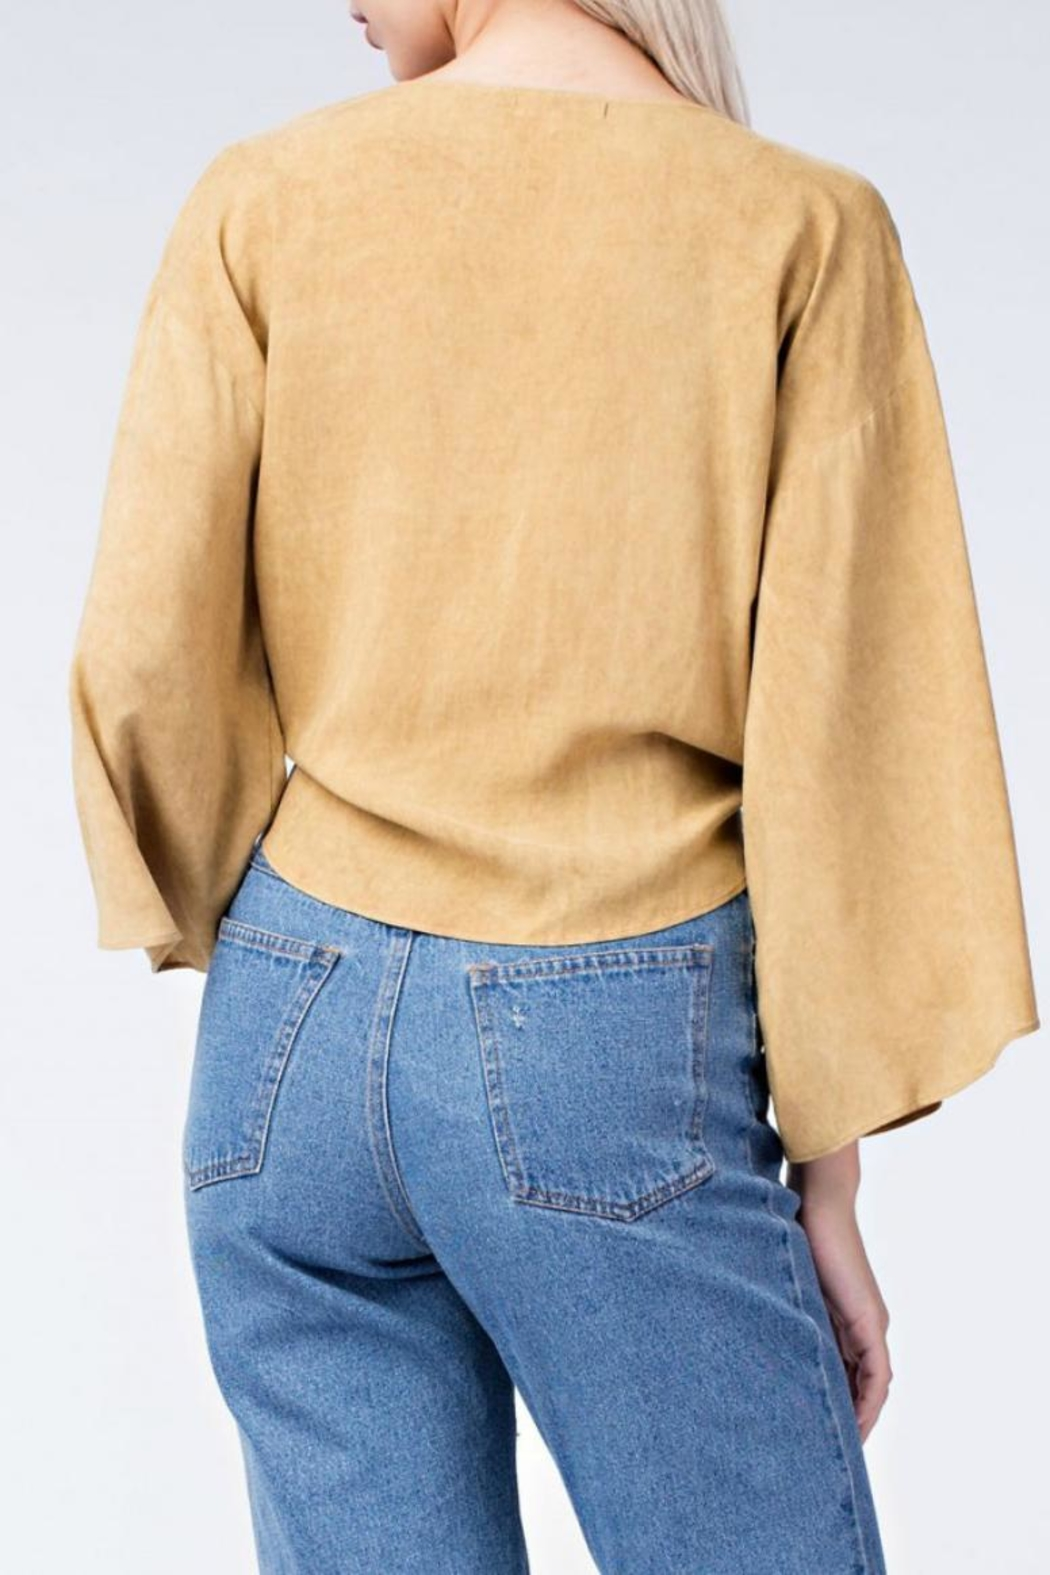 honey belle Mustard Tie Top - Front Full Image